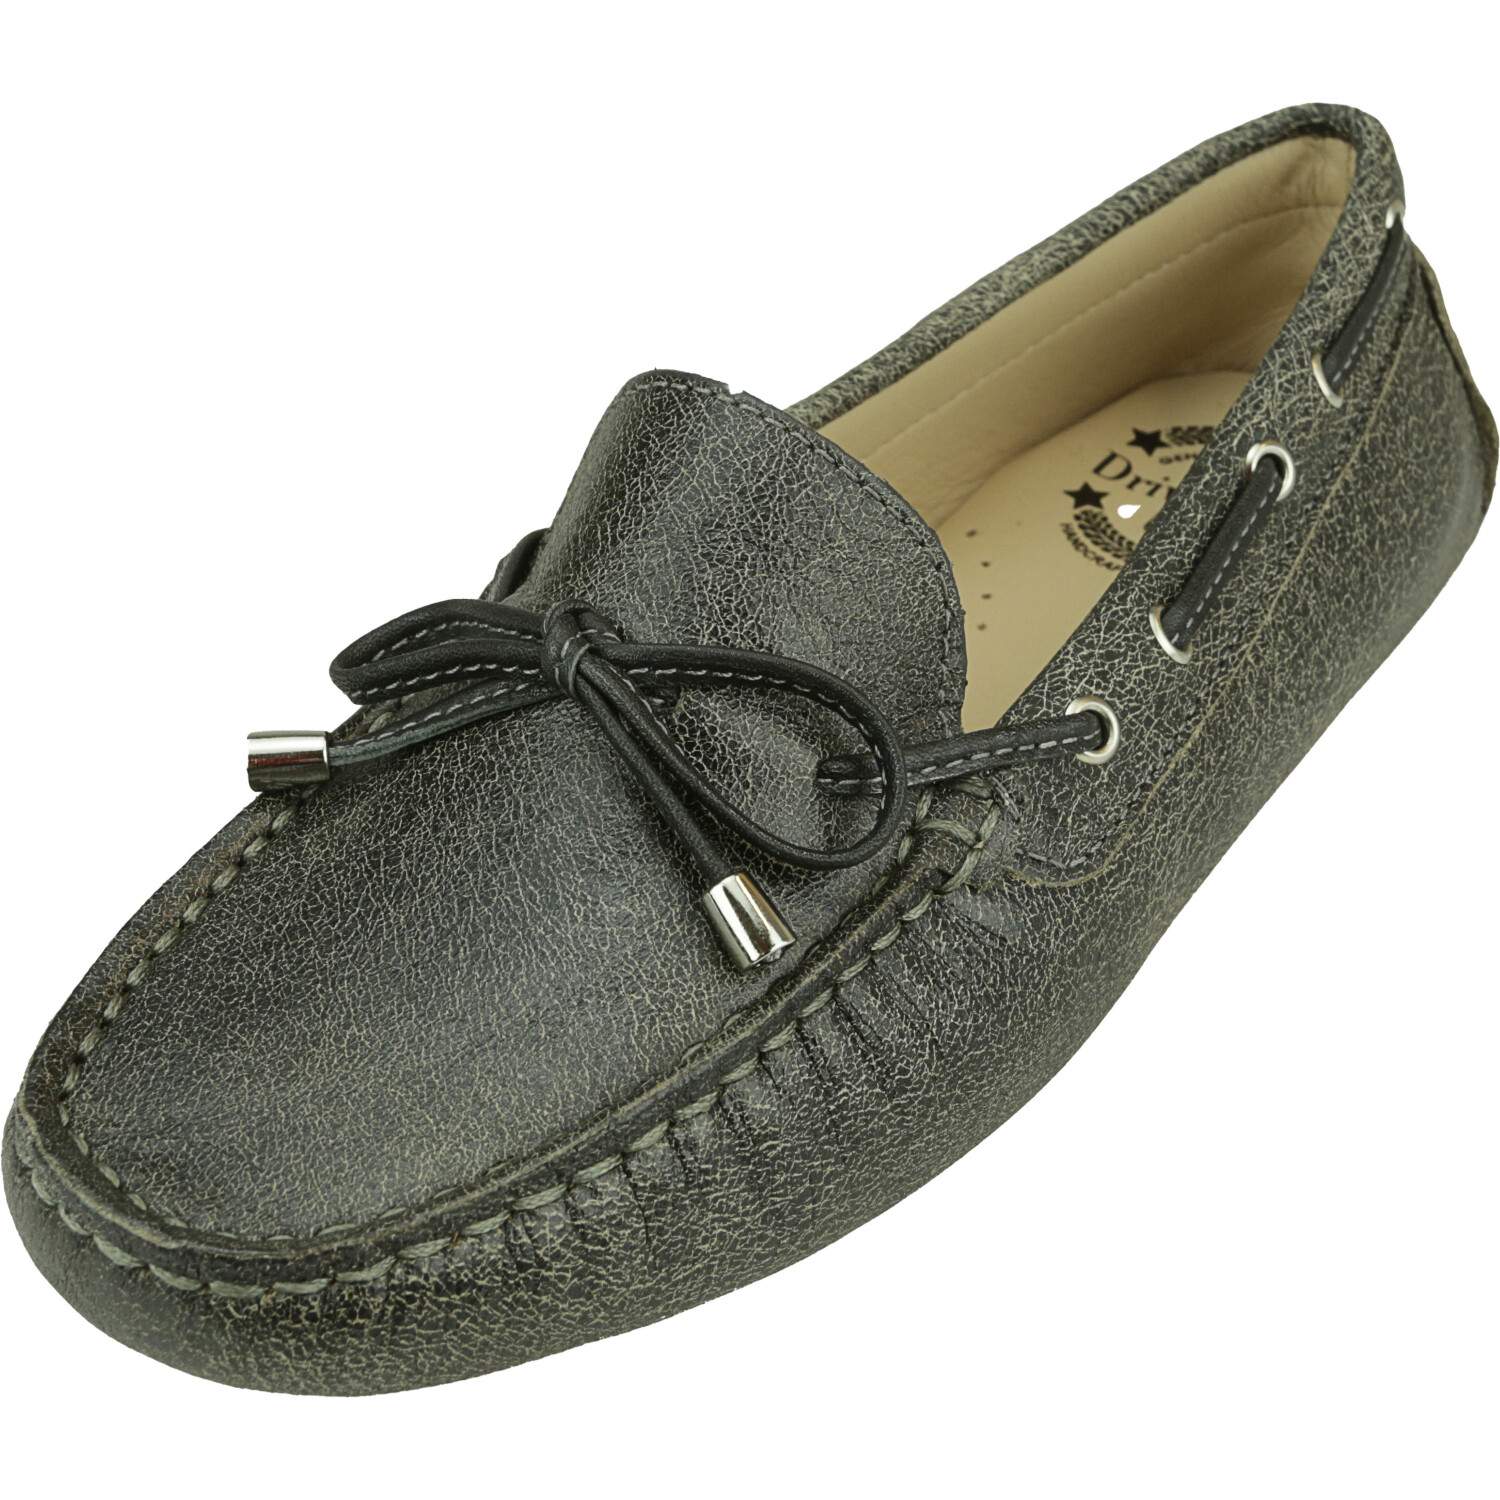 Driver Club Usa Women's Nantucket Grey Stone Ankle-High Leather Loafers & Slip-On - 5.5M